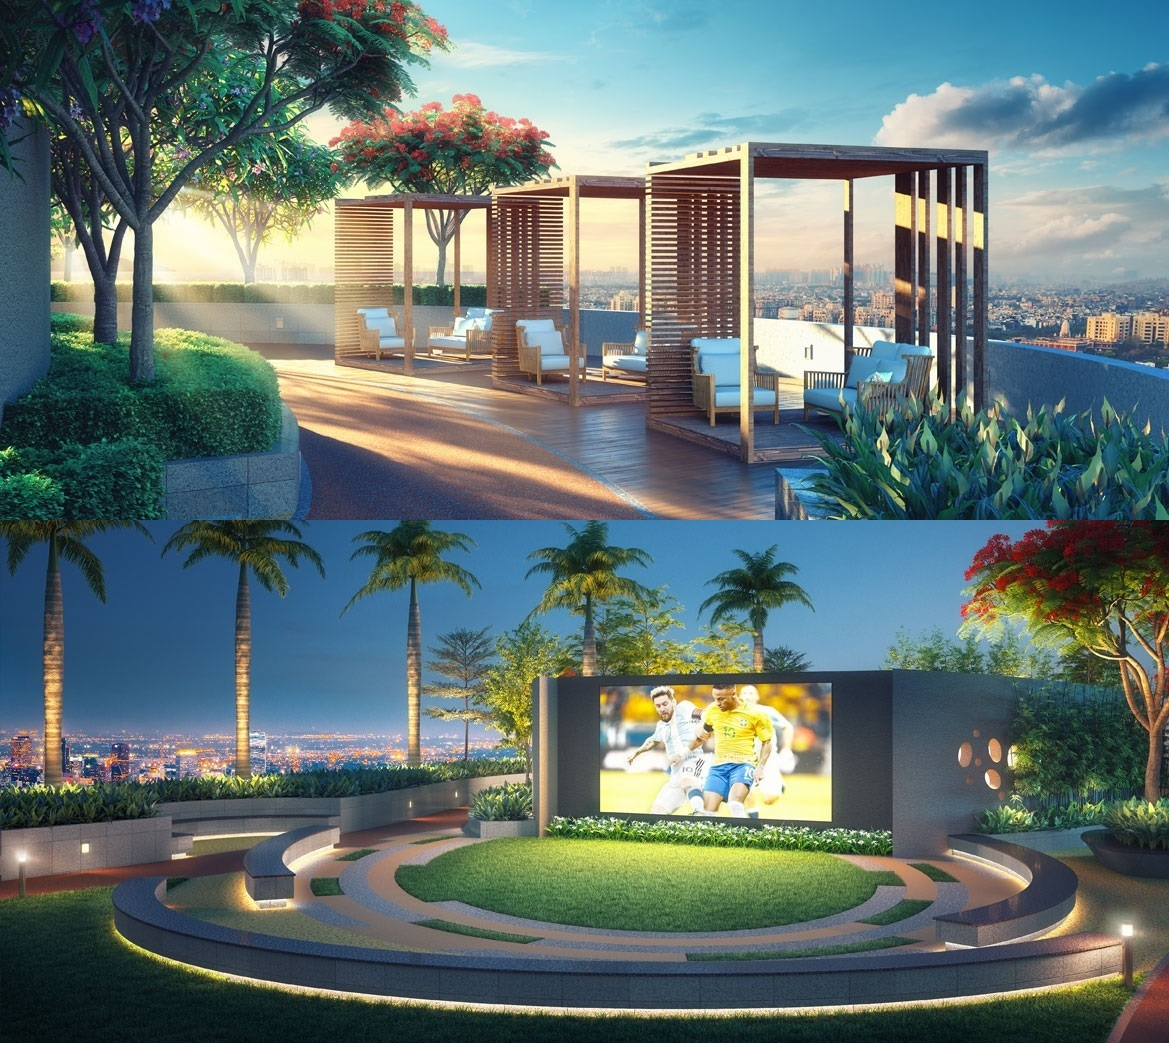 siddha sky phase 4 amenities features8